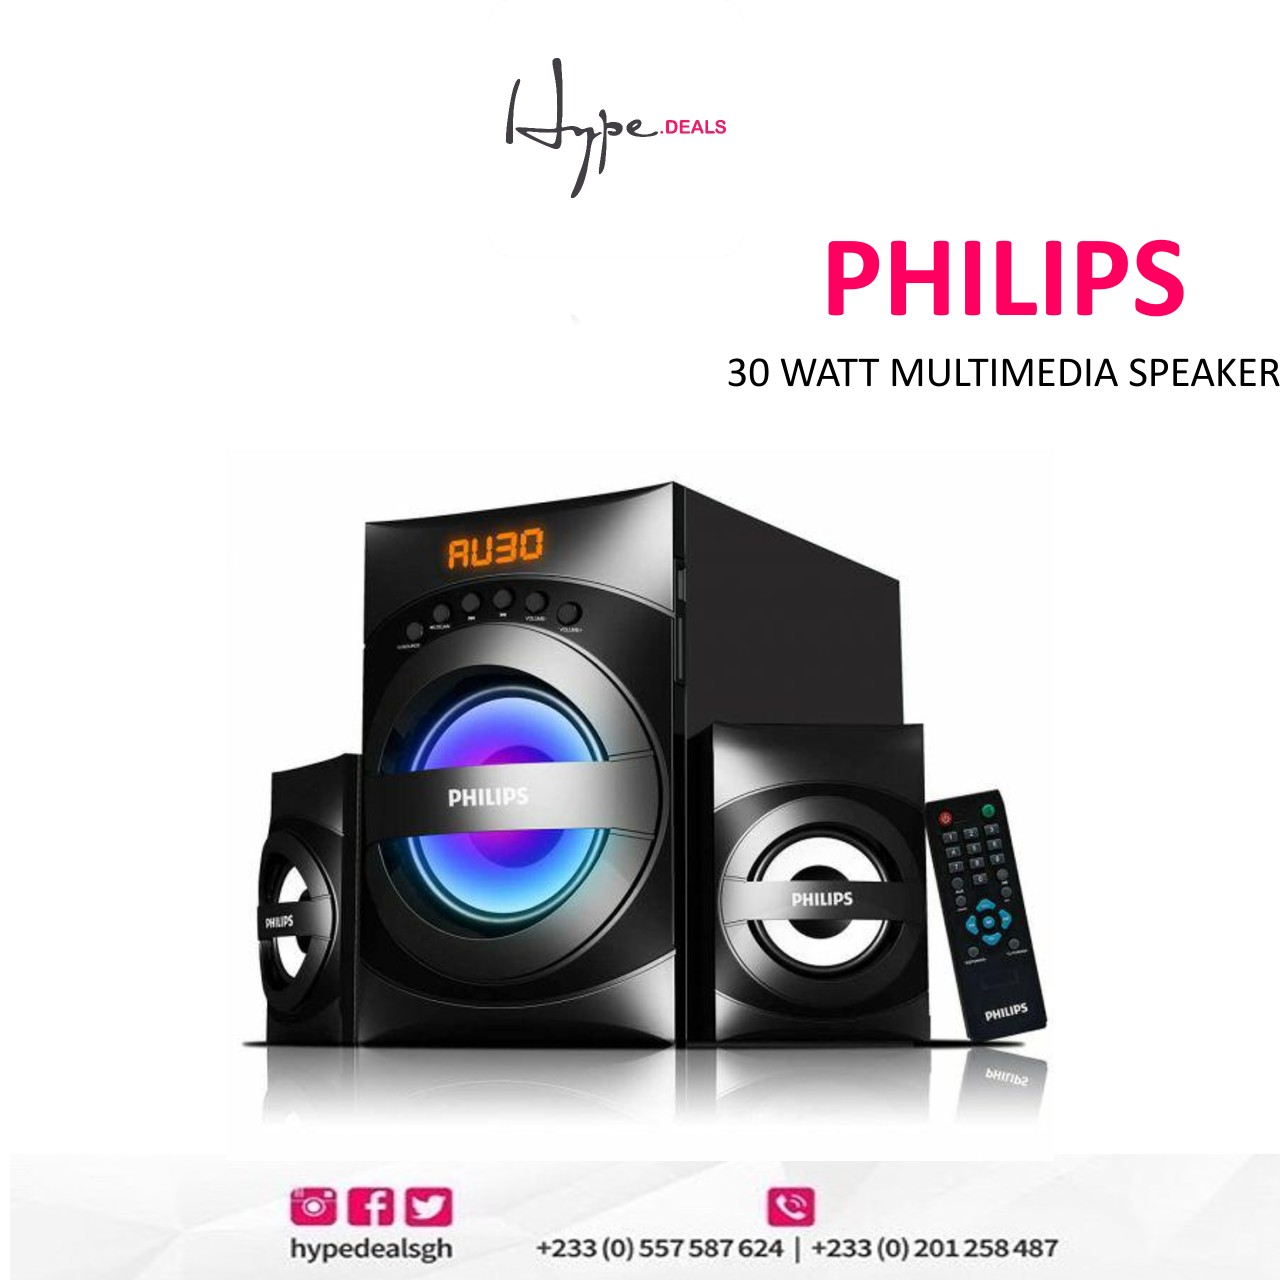 Philips 30 Watt Multimedia Speaker (MMS3535F)